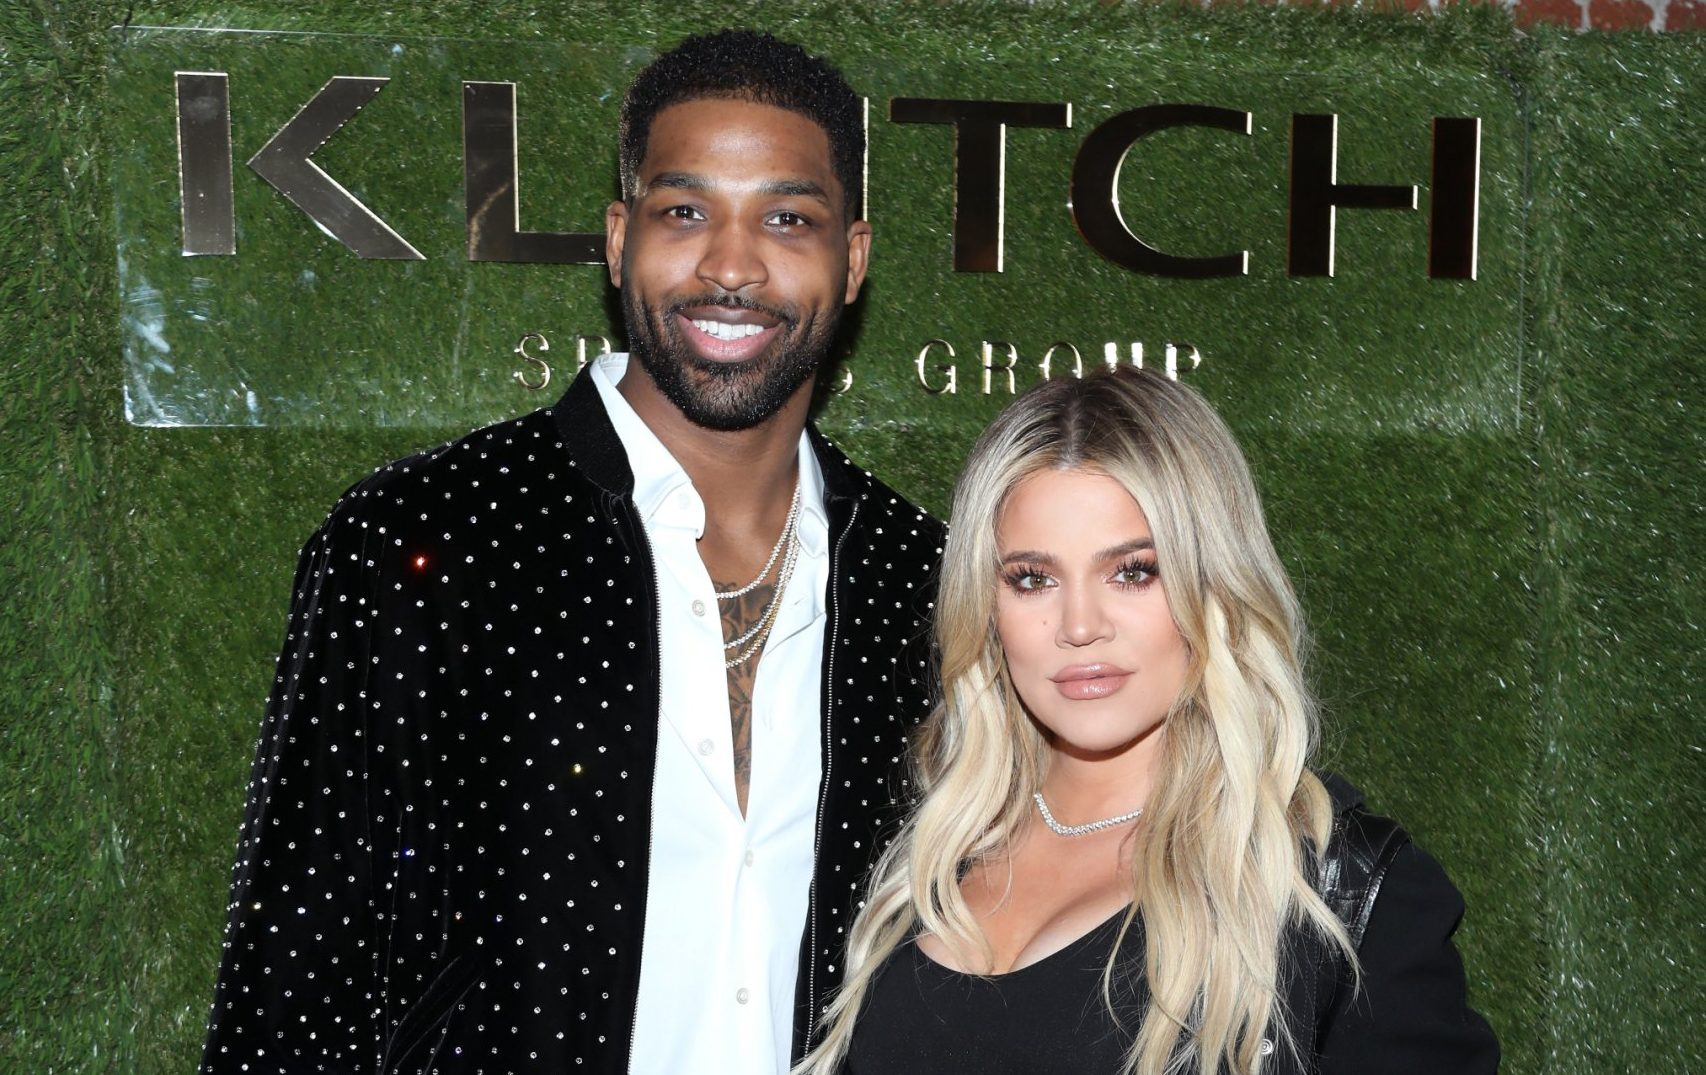 Tristan Thompson 'uses Instagram to chat up girls behind Khloe Kardashian's back'